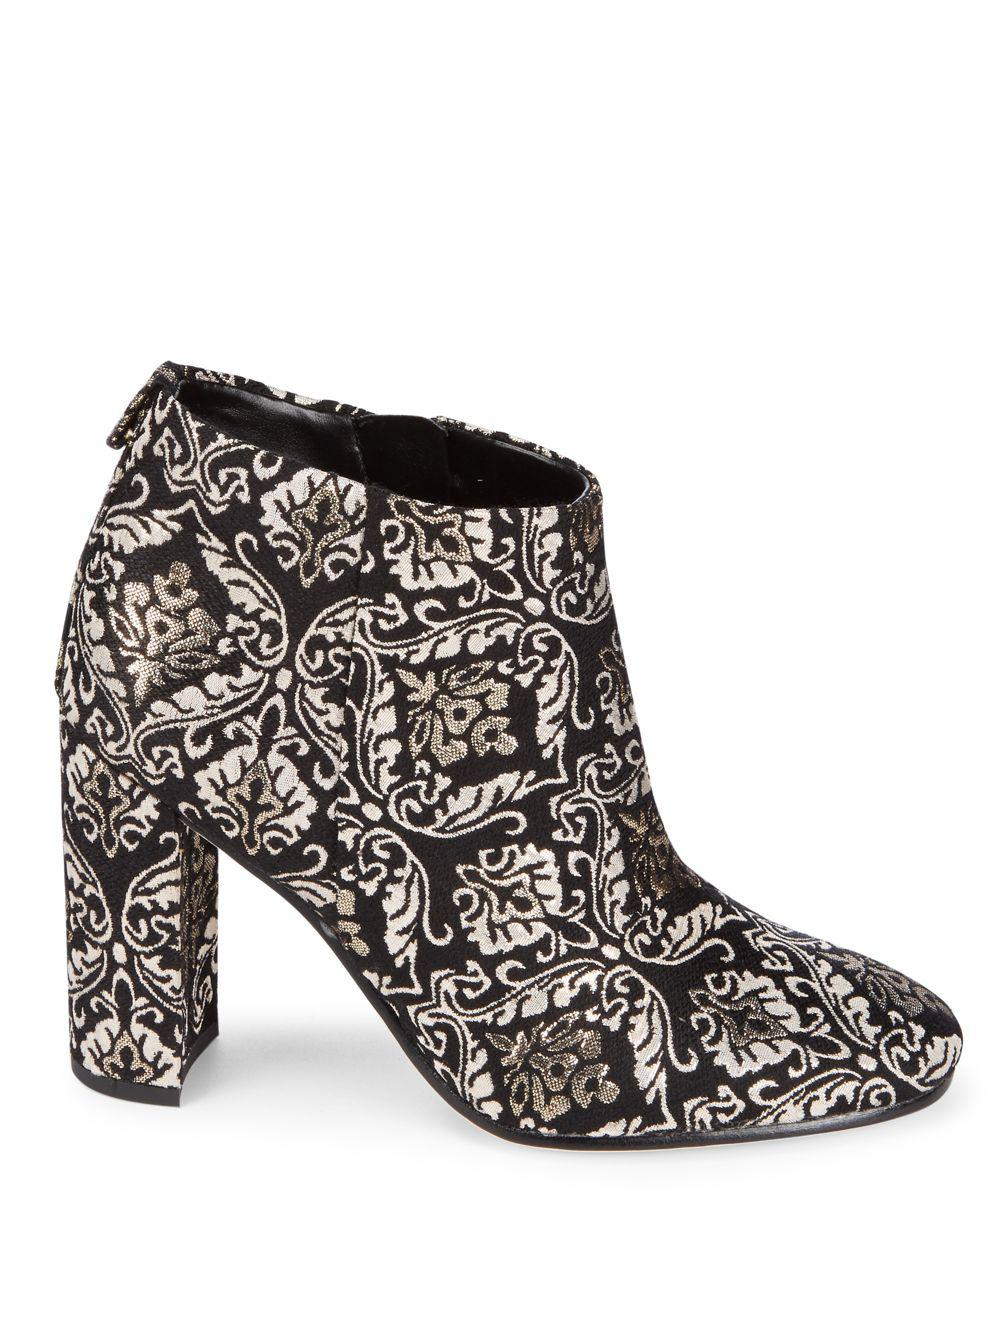 2b0174639f36 Sam Edelman - Black  cambell  Floral Damask Ankle Boots - Lyst. View  fullscreen